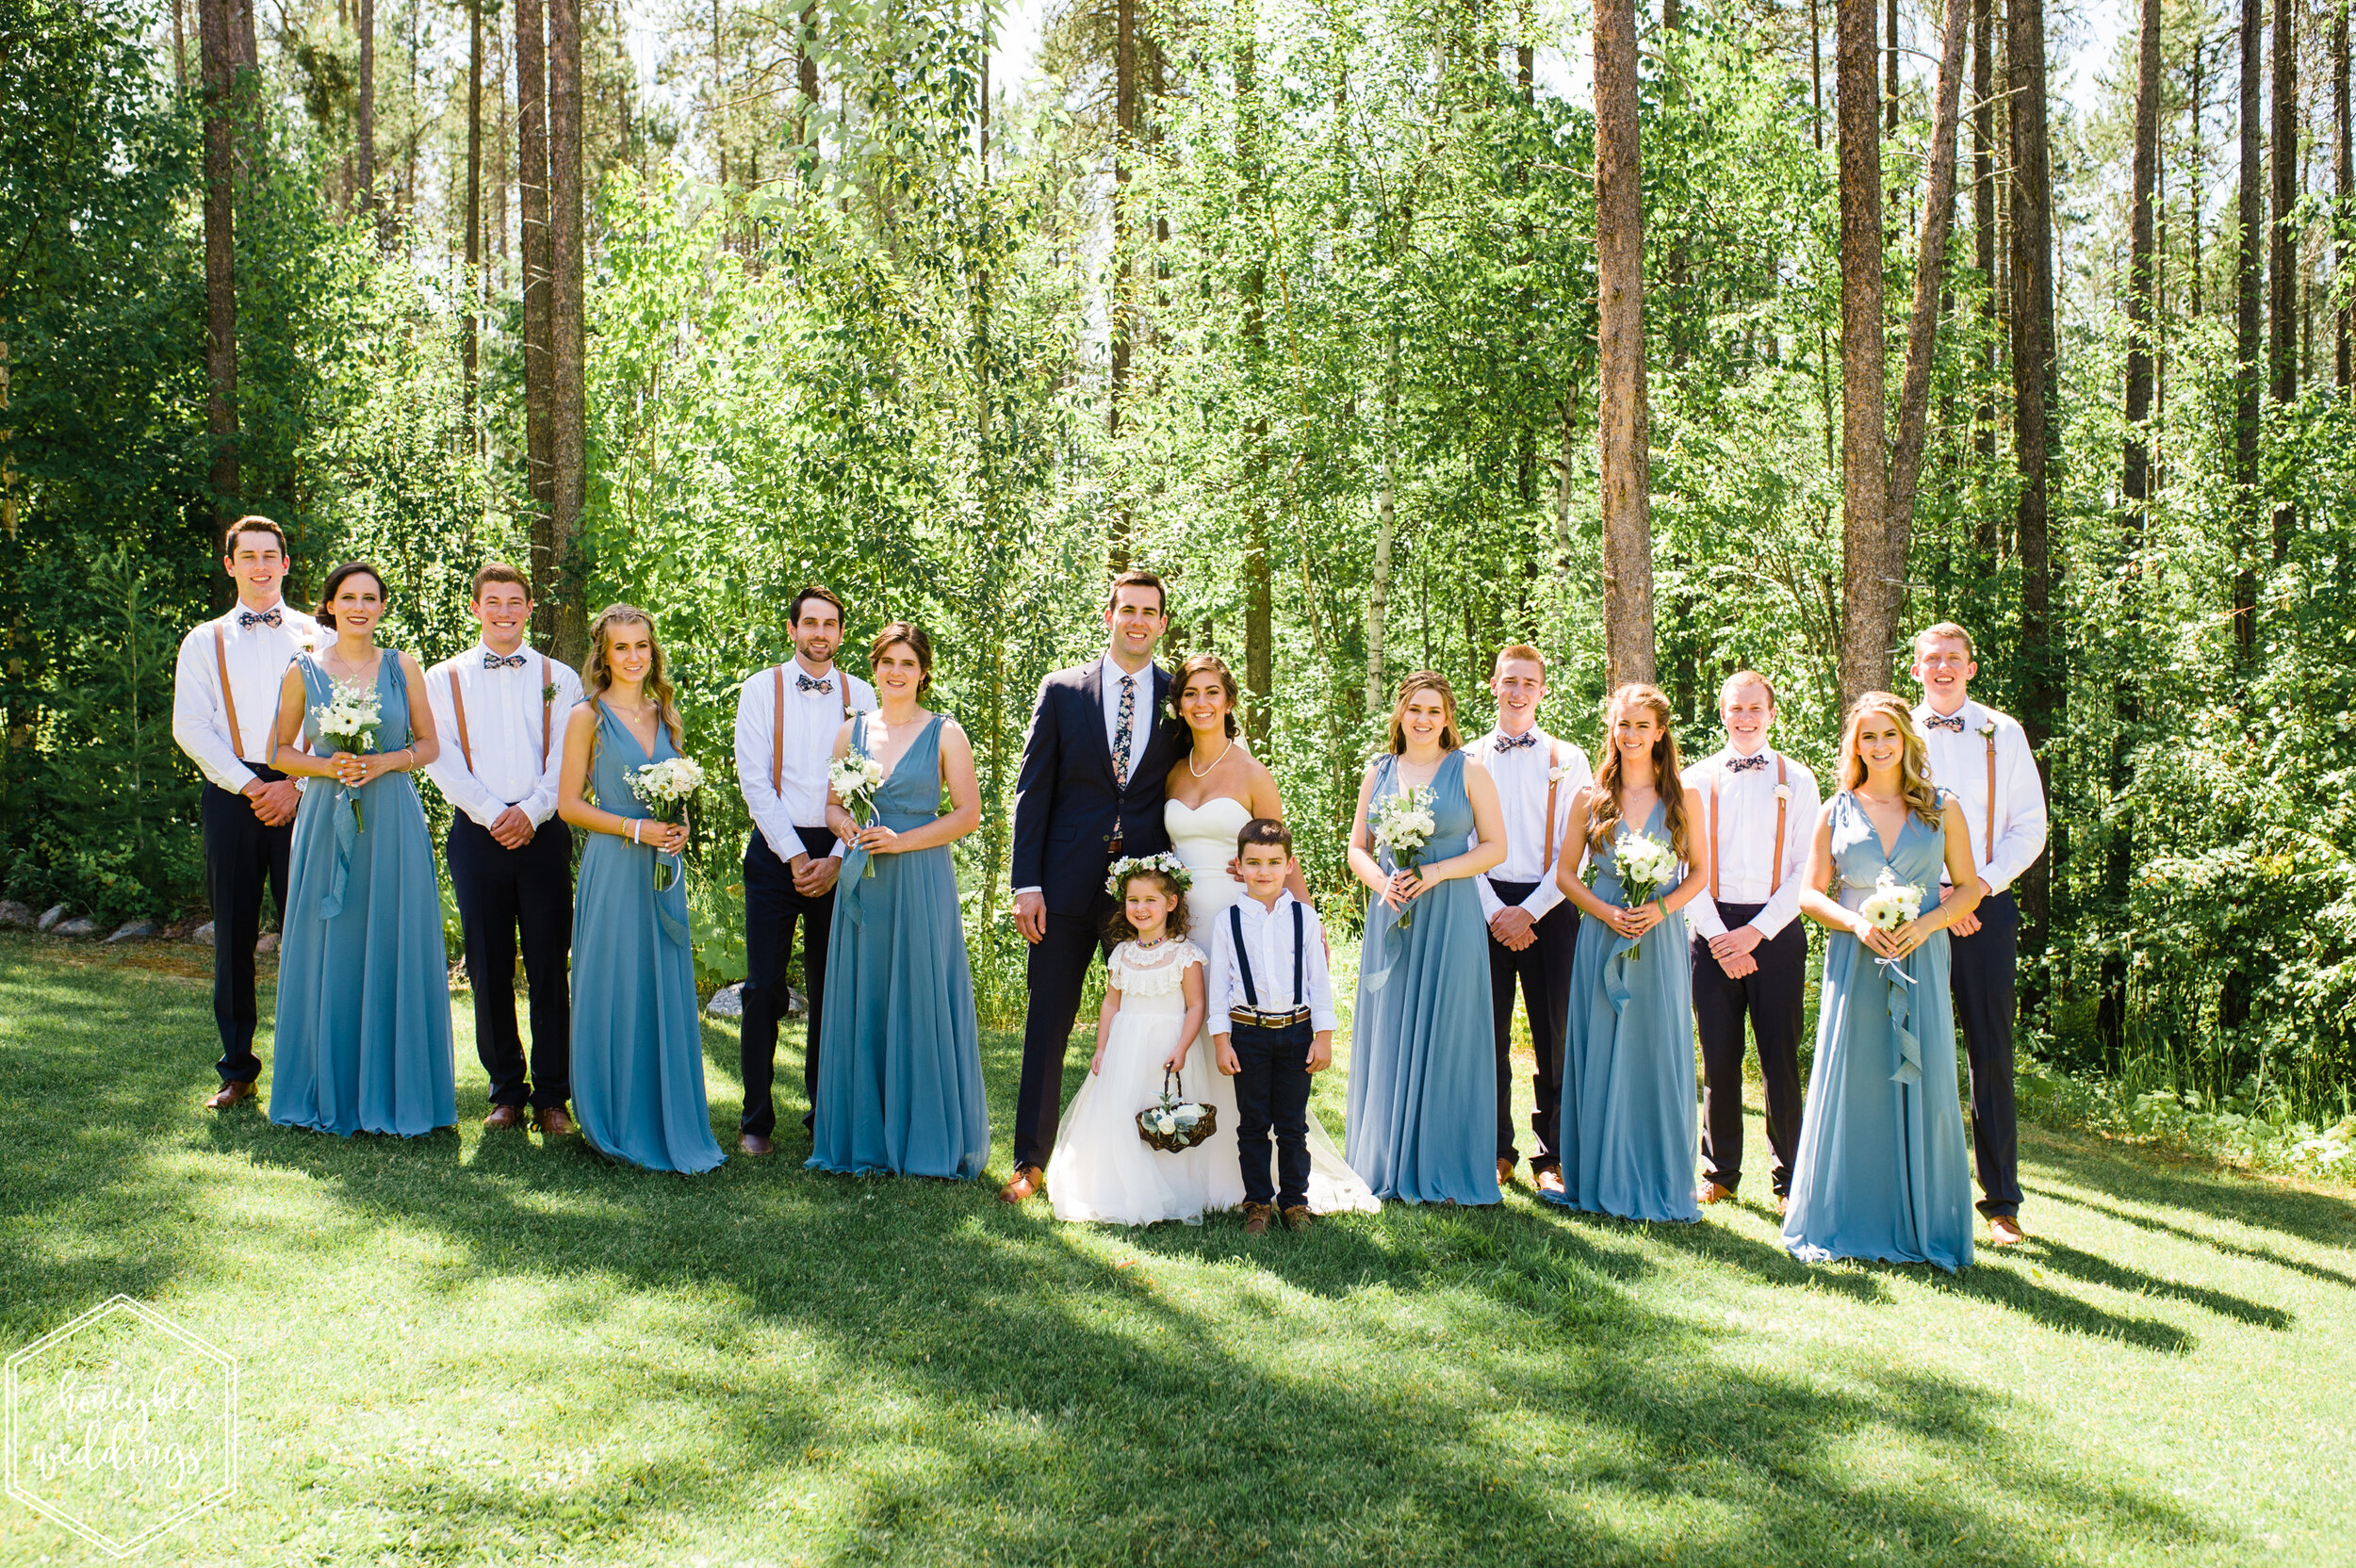 070Glacier National Park Wedding_Glacier Outdoor Center_Honeybee Weddings_Anna & Seth_July 21, 2019-2000.jpg